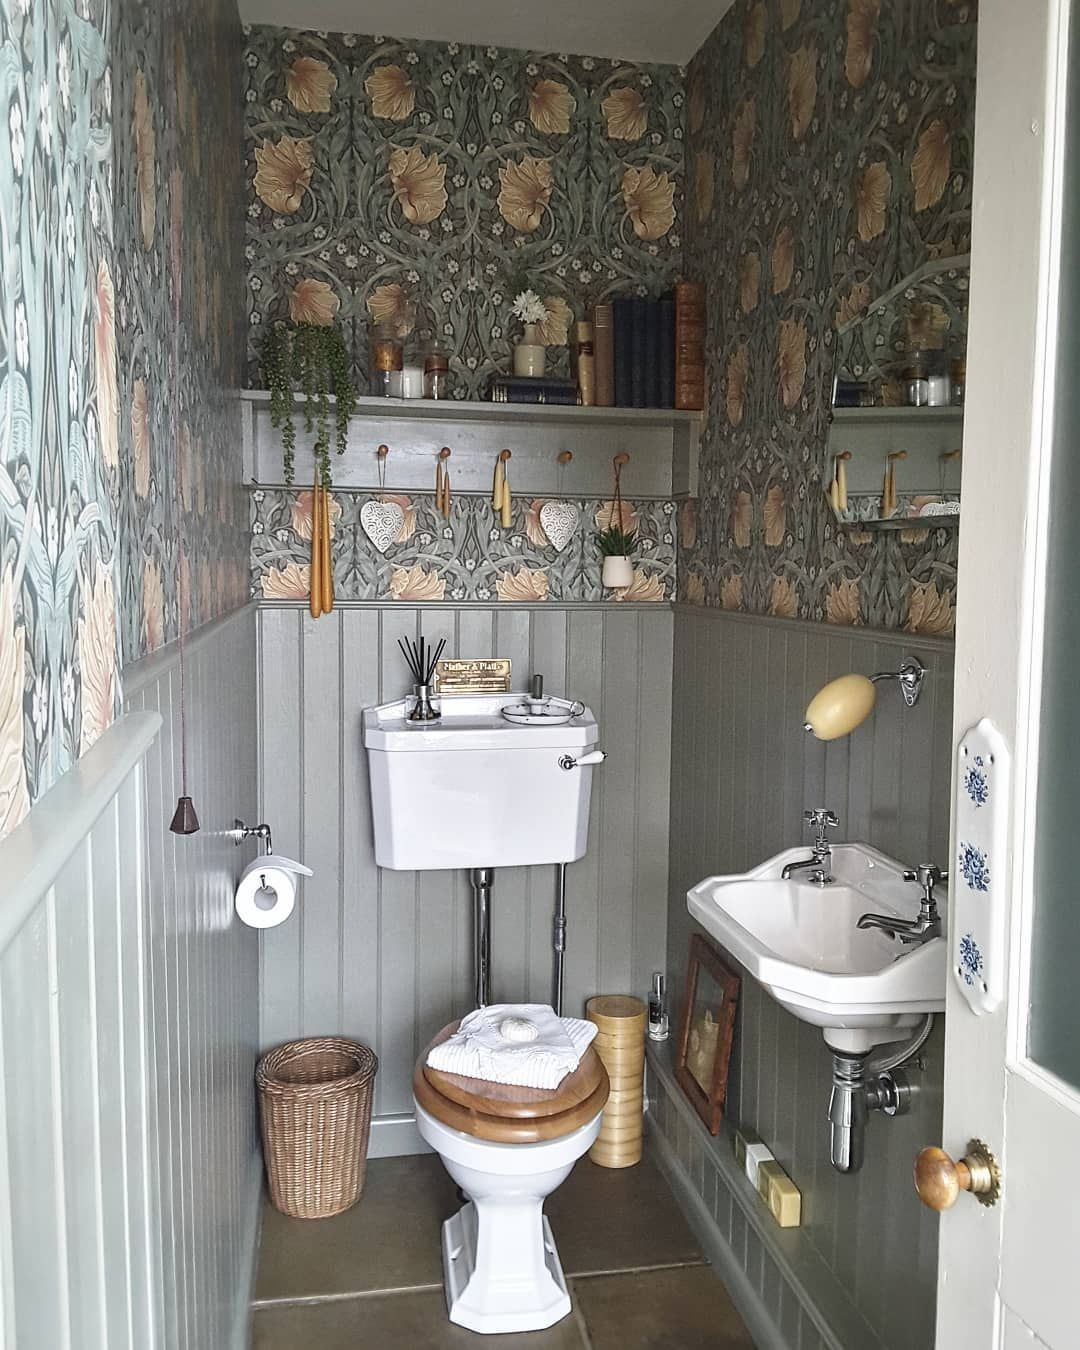 Rebecca On Instagram So This Morning I Am Sharing My Downstairs Loo Basically Because It S The Only Tidy Ro In 2020 Downstairs Loo Small Downstairs Toilet Tidy Room